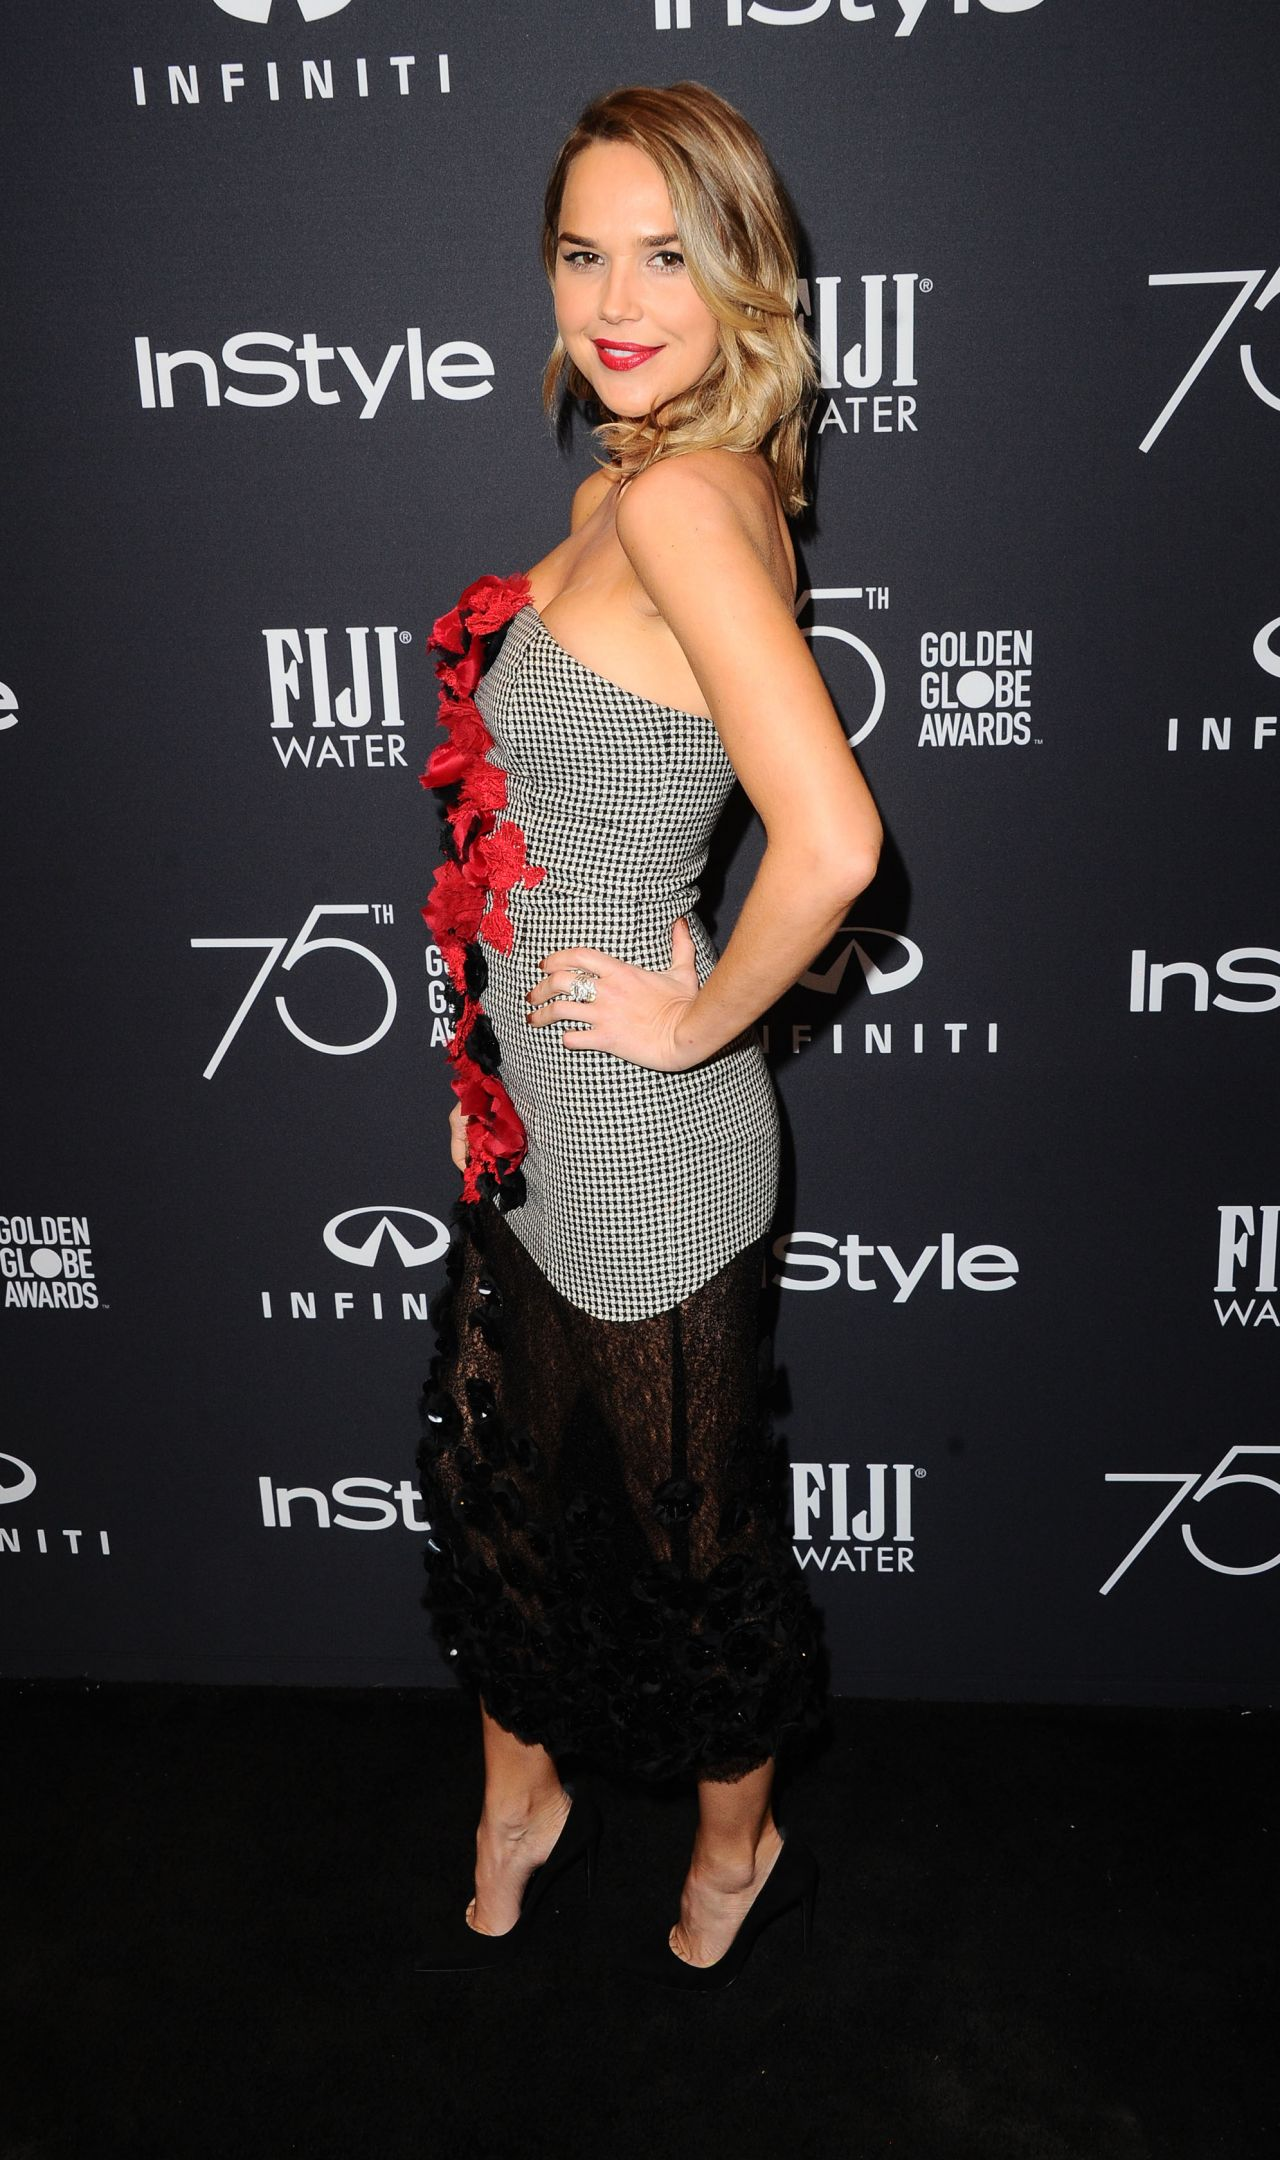 Arielle kebbel hfpa and instyle celebrate golden globe season in los angeles naked (68 pics)